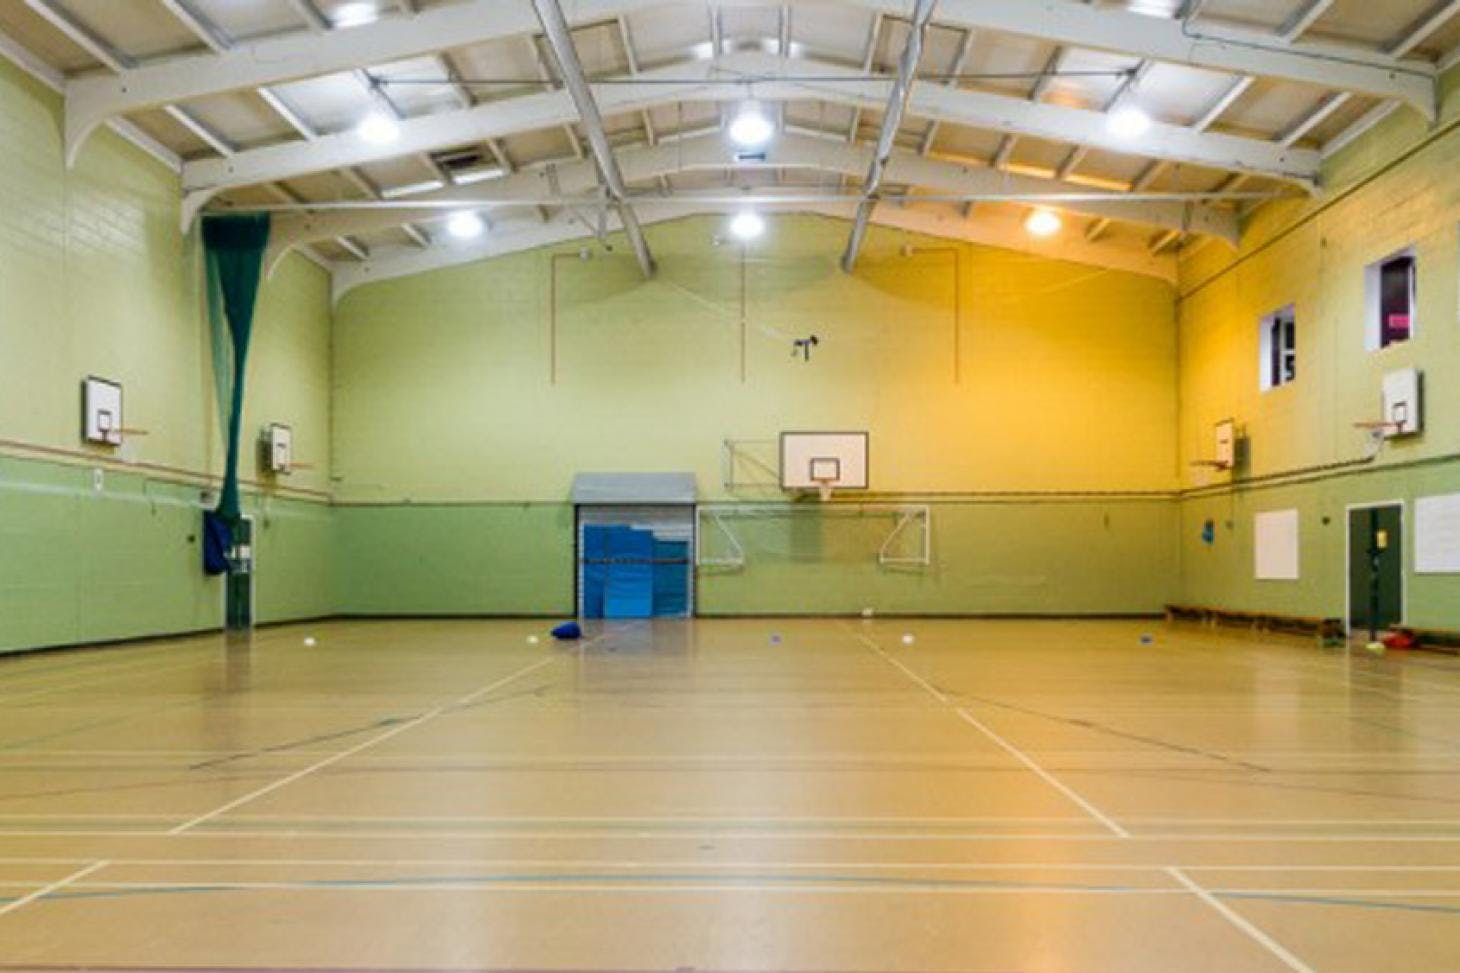 King Harold Business and Enterprise Academy Indoor futsal pitch